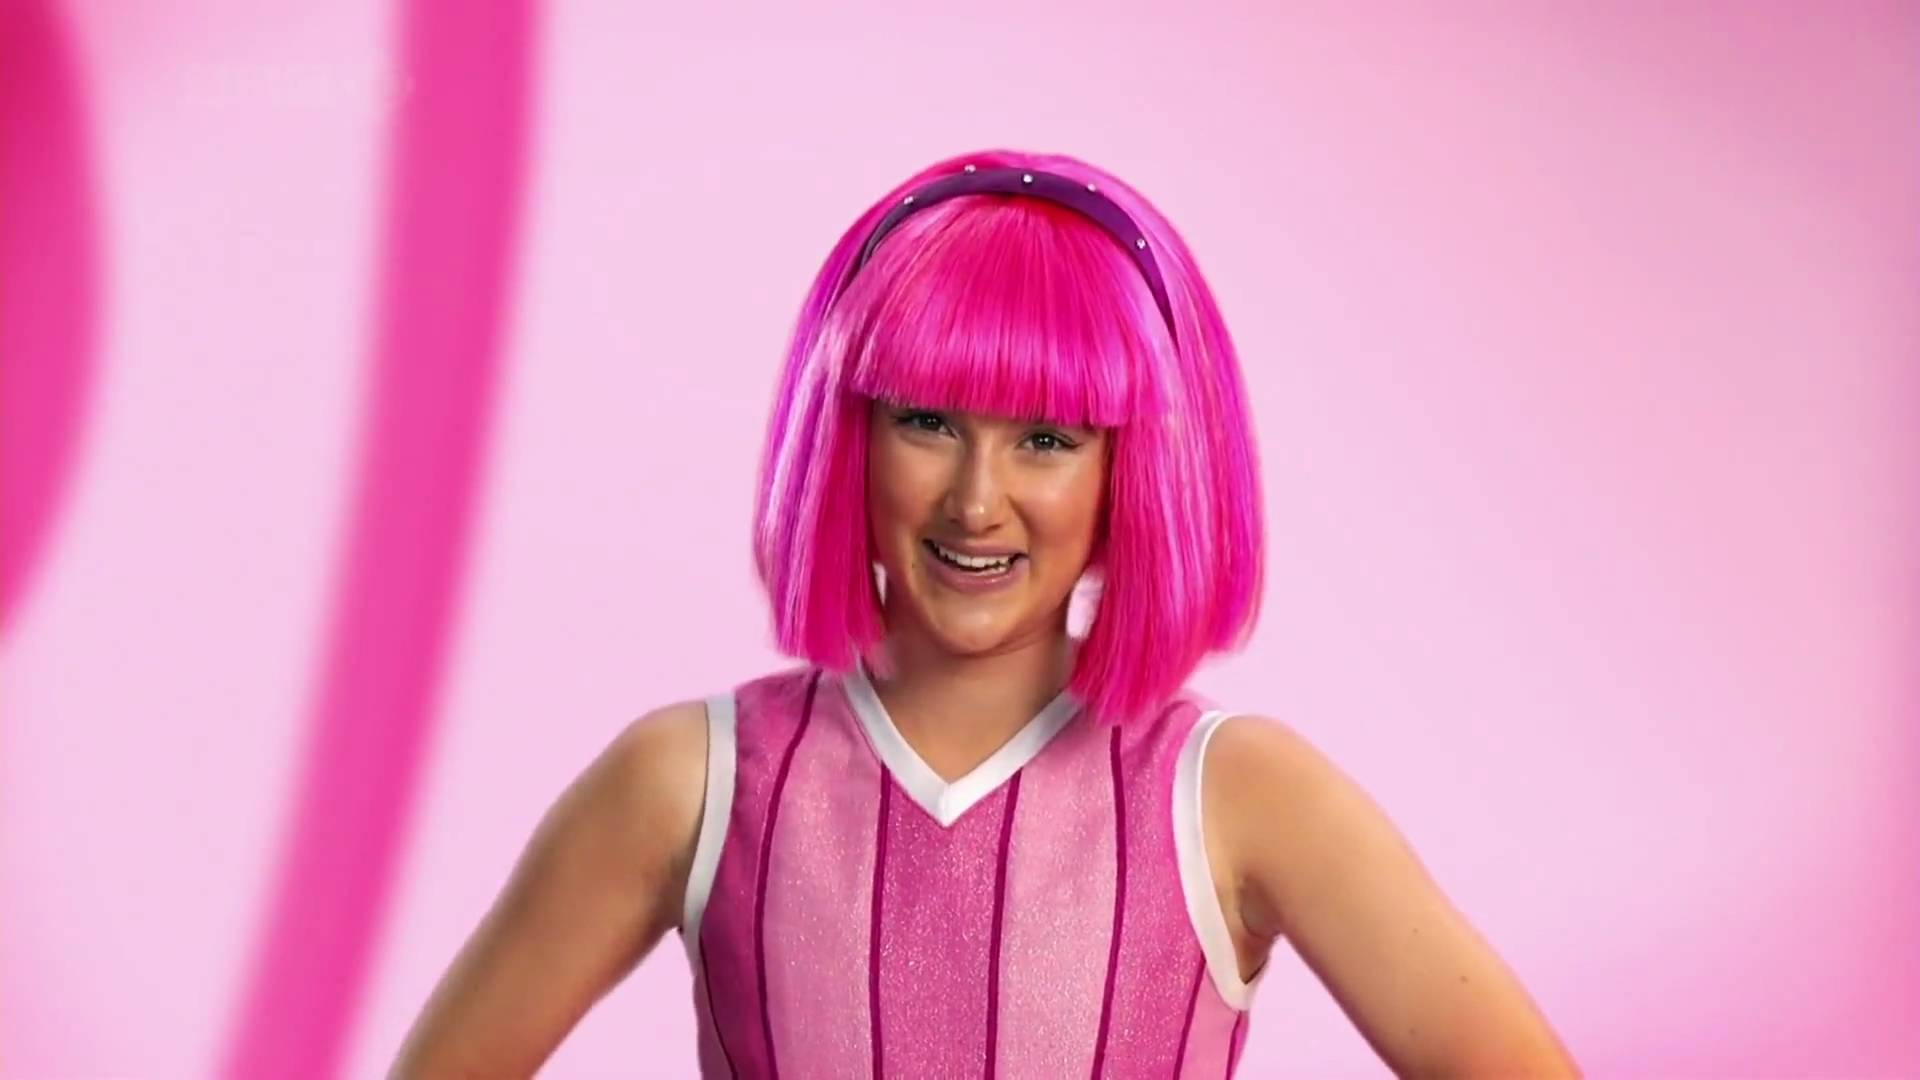 Stephanie lazytown lookalike video